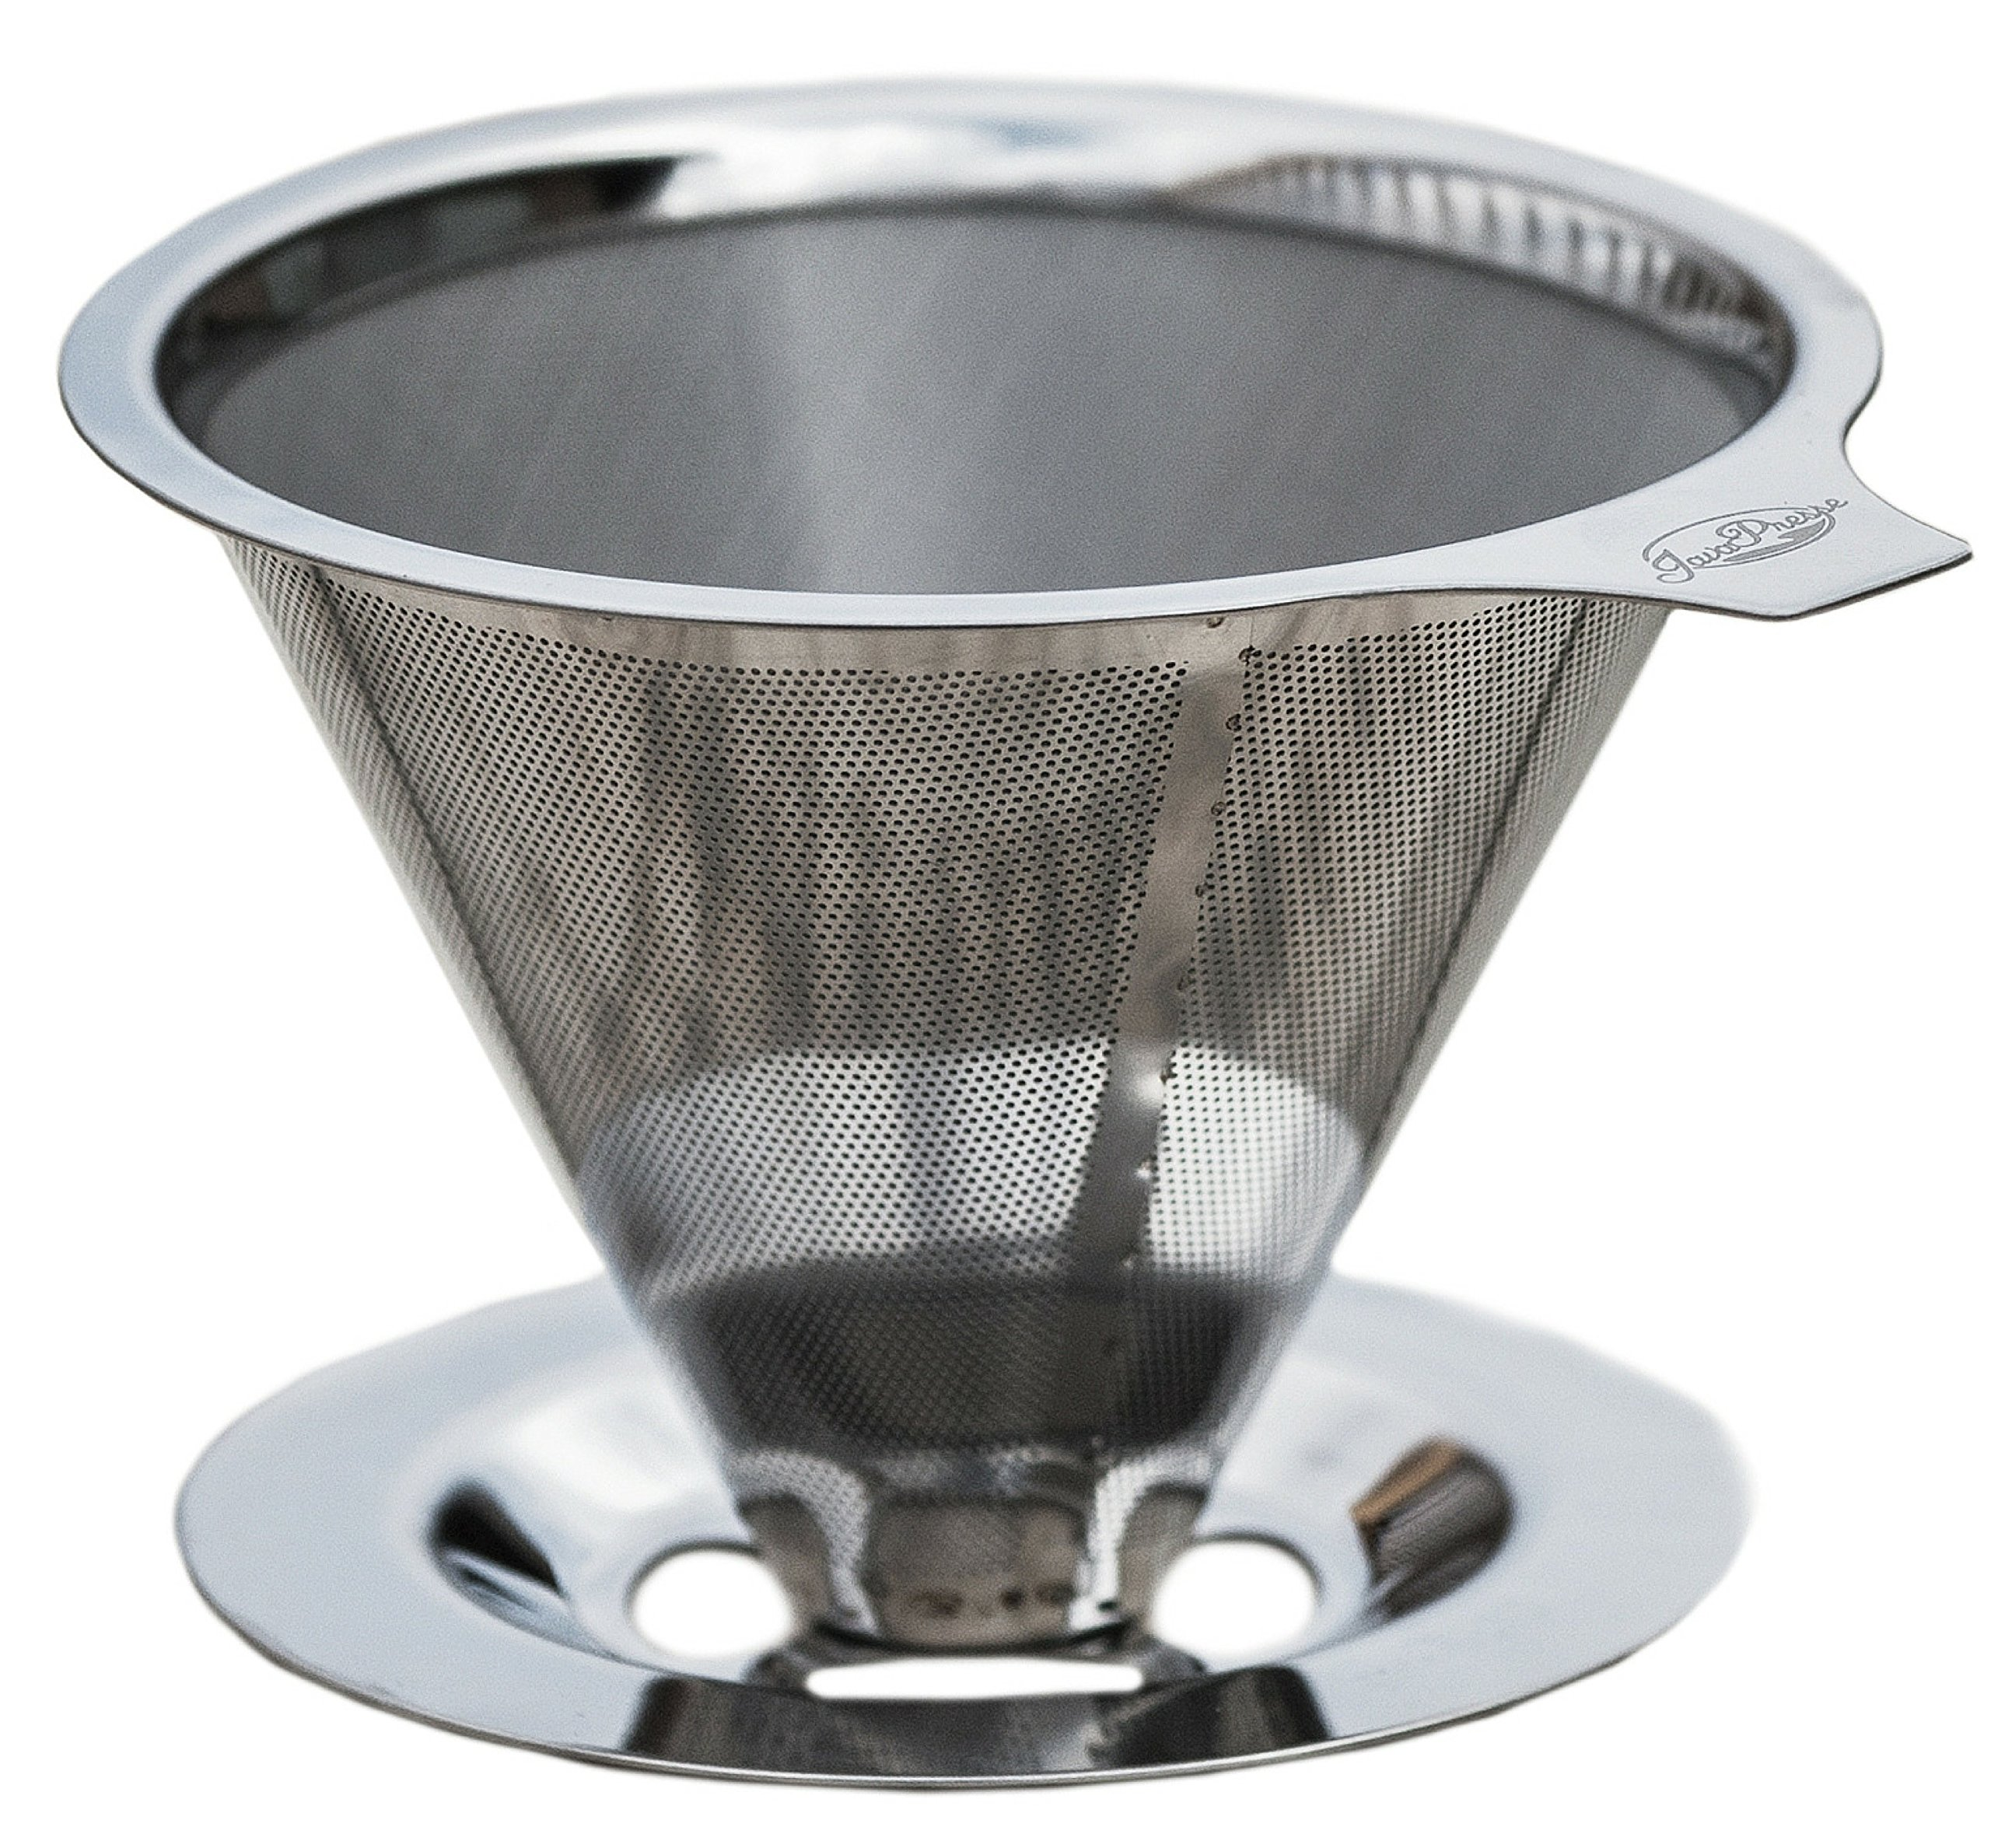 JavaPresse Pour Over Coffee Maker with Stand | Clever Hand Drip Brewer with Reusable Filter Dripper by JavaPresse